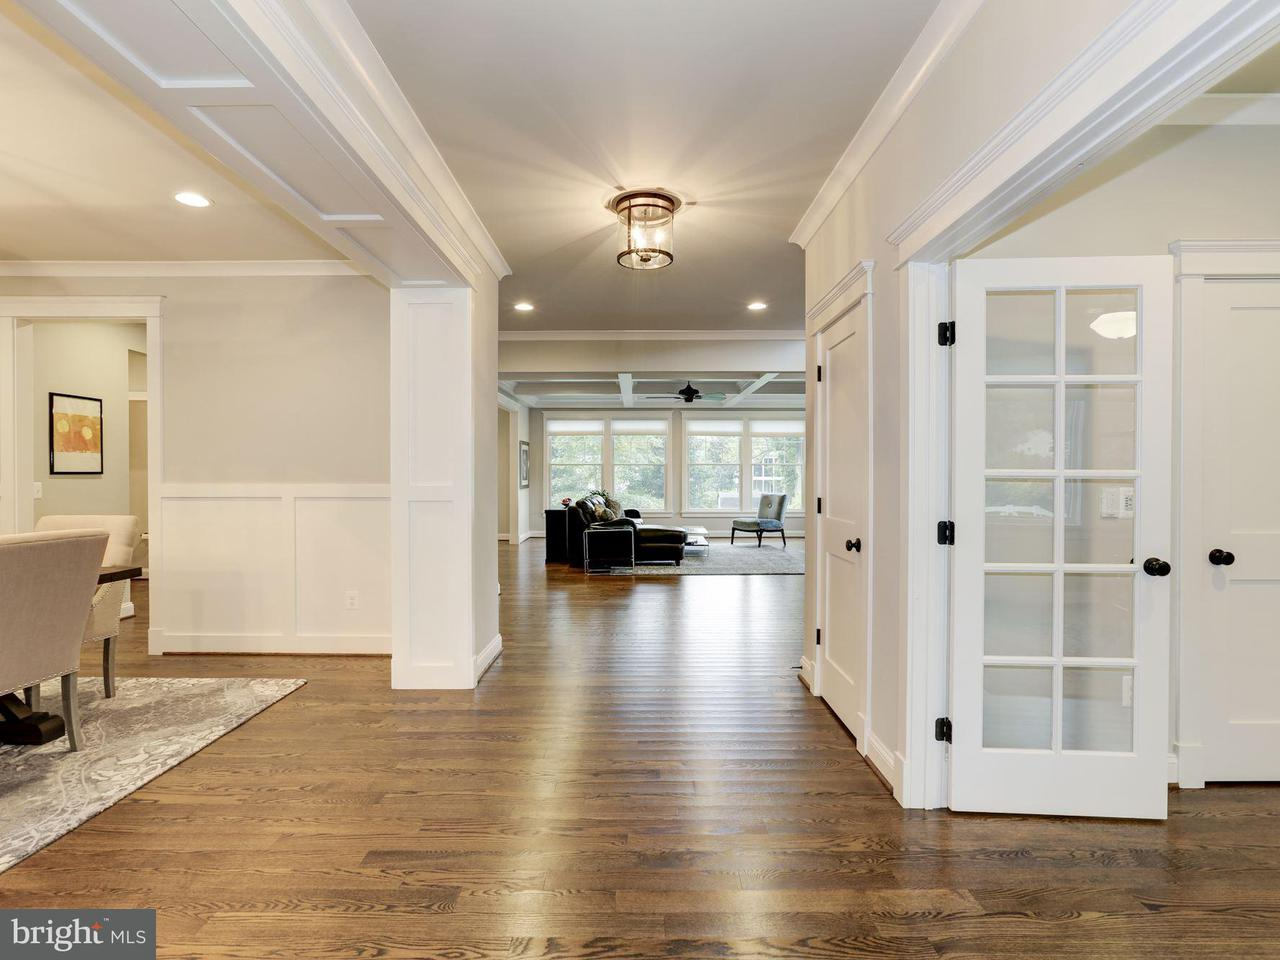 Single Family Home for Sale at 6844 28TH ST N 6844 28TH ST N Arlington, Virginia 22213 United States